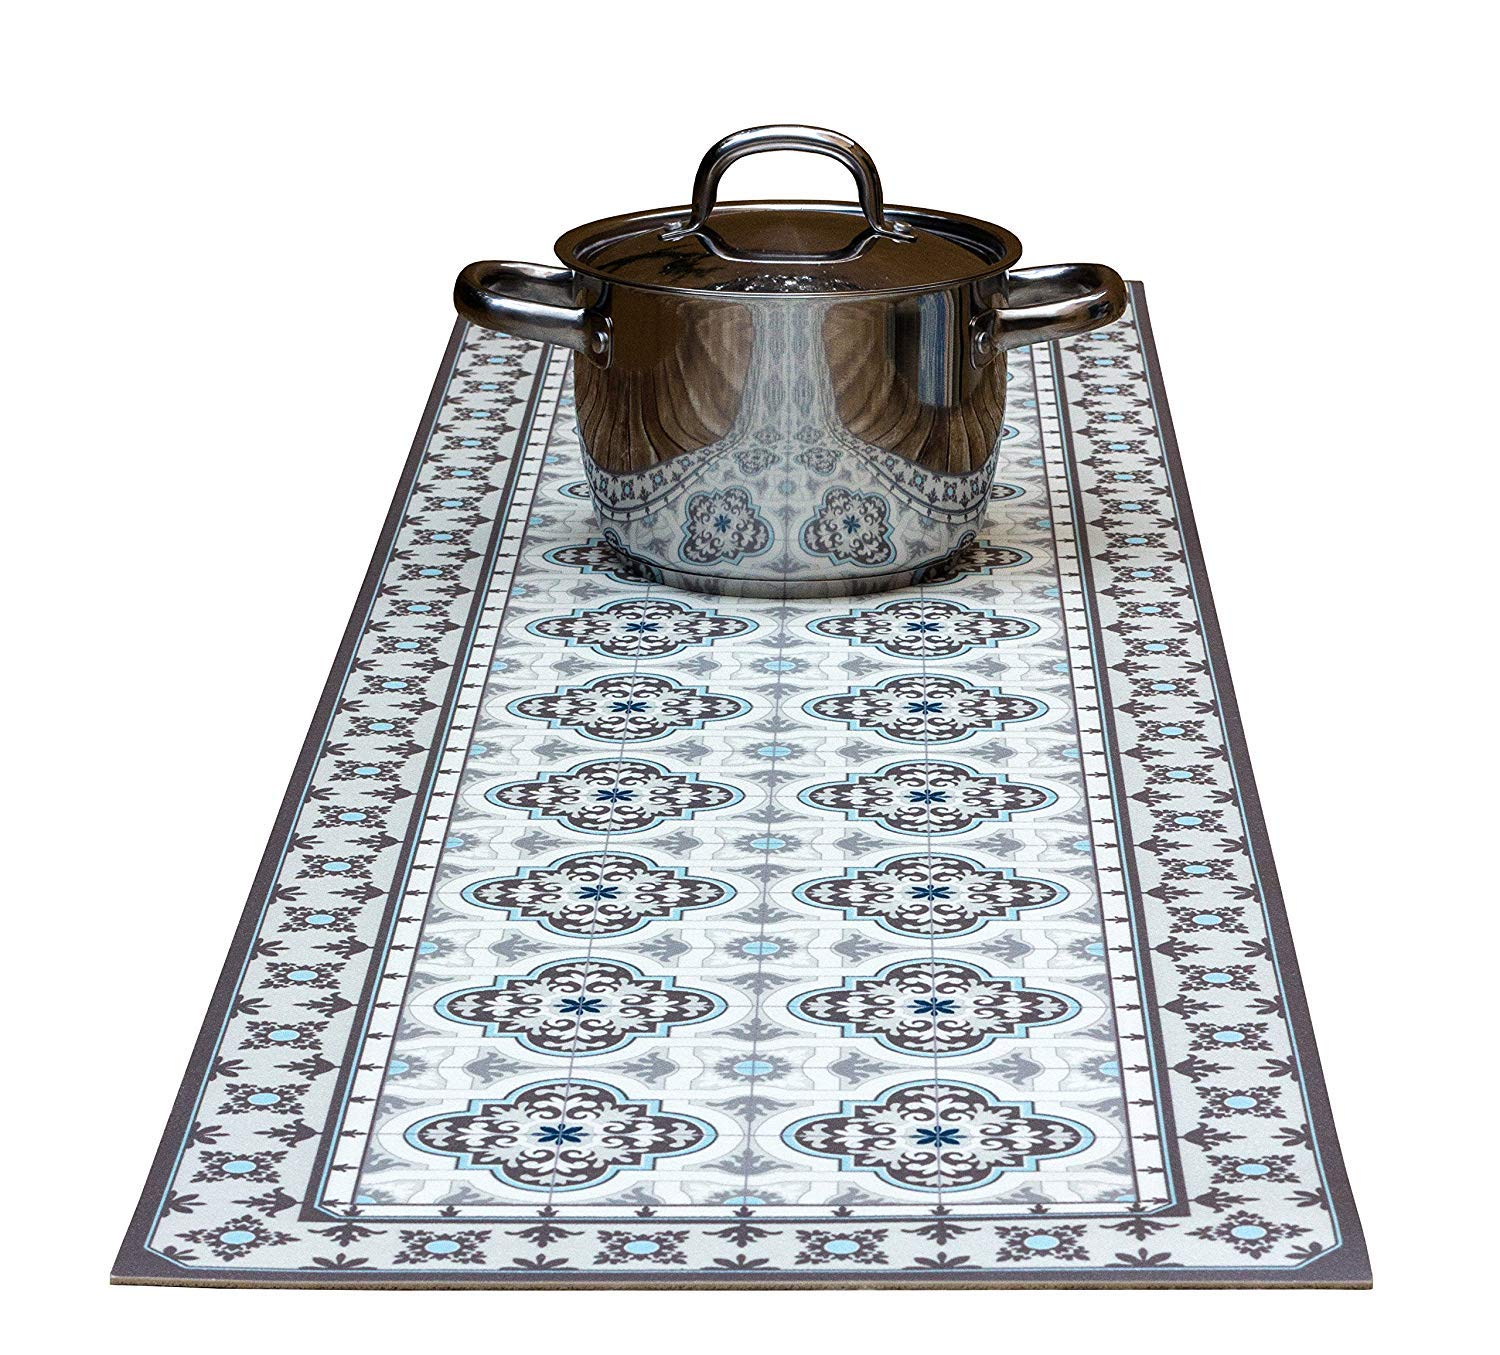 Toscana Runner Decorative Trivet and Kitchen Table Runners Handles Heat Up to 365F, Anti Slip, Hand Washable and Convenient for Hot Dishes and Pots by Tiva Design